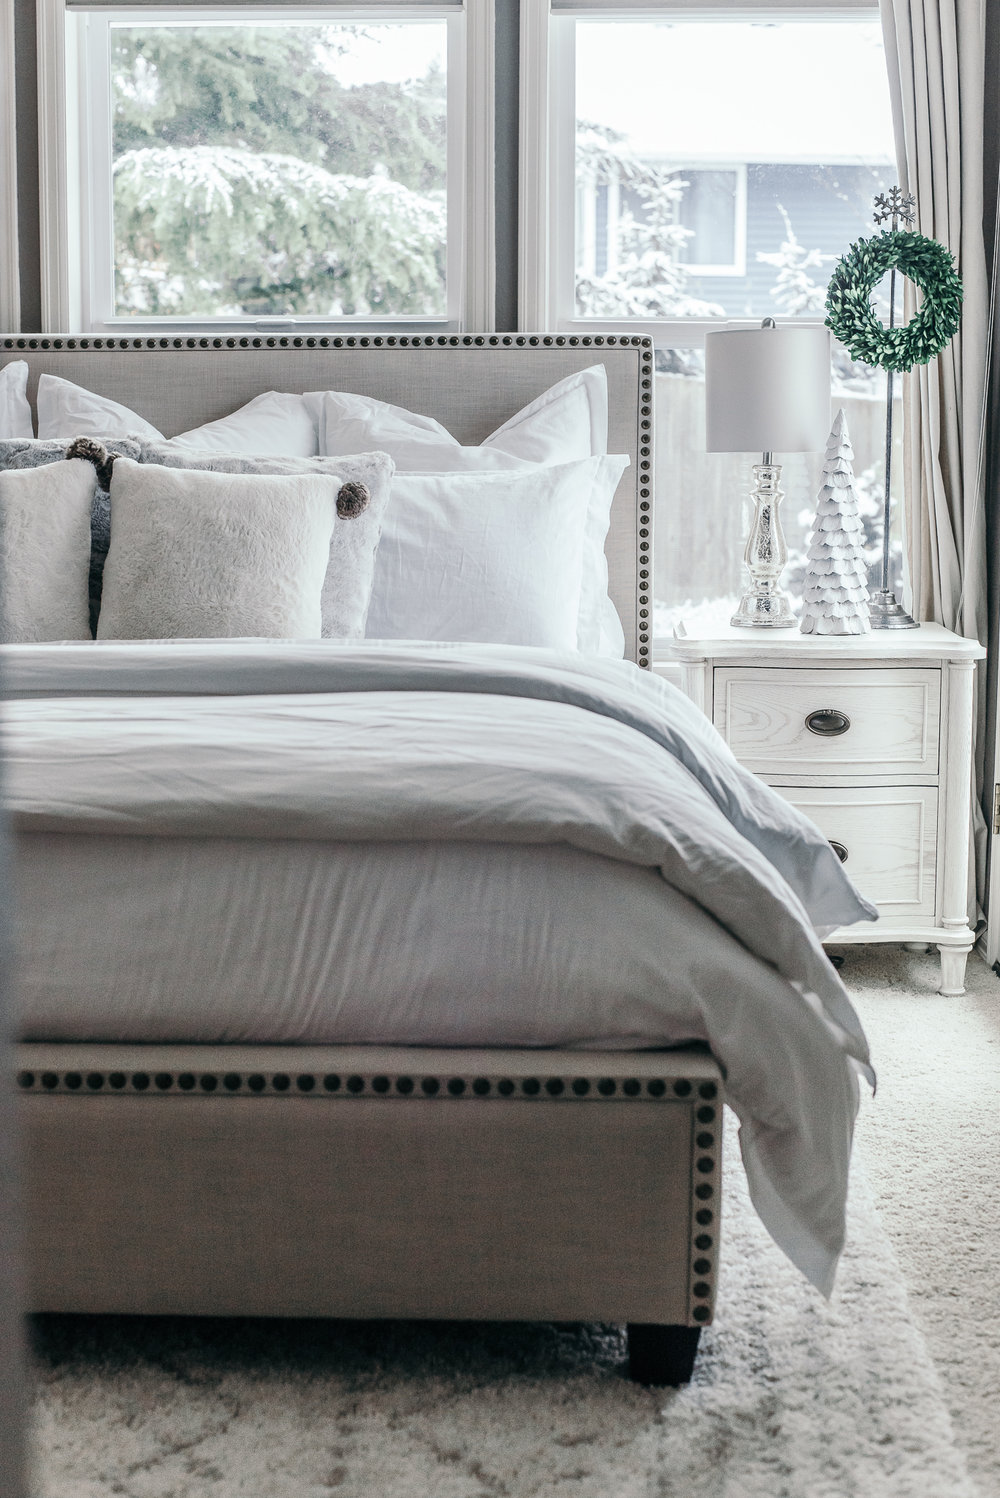 Joss & Main Teagan Bed @houseof5five Upholstered Bed, Winter Bedroom, Birch Lane Nightstands, House of Five